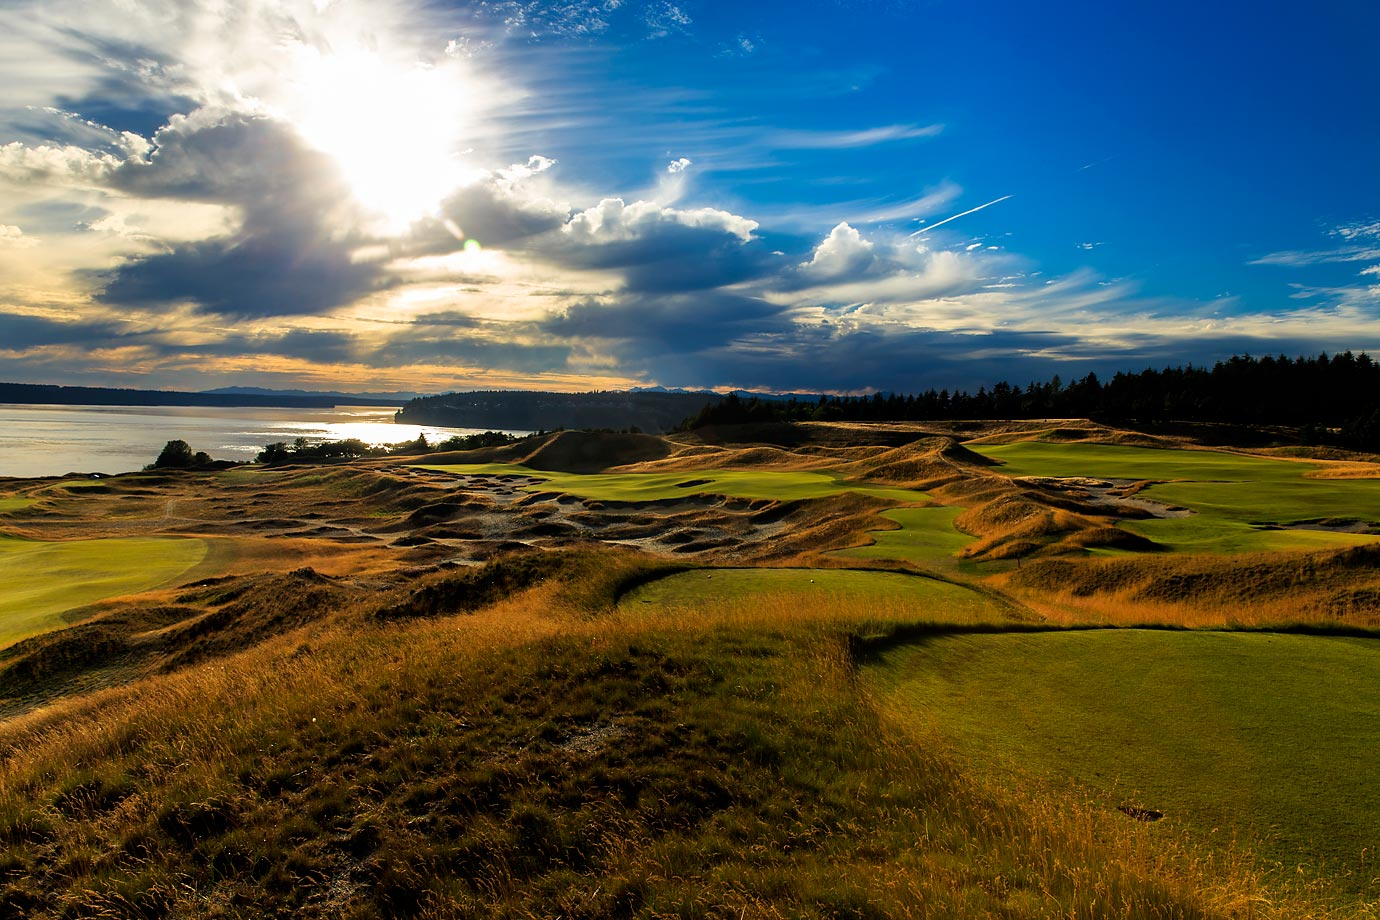 The par-4 14th Hole at Chambers Bay is known as 'Cape Fear', and features a downhill tee shot on a hole that could measure as long as 546 yards.